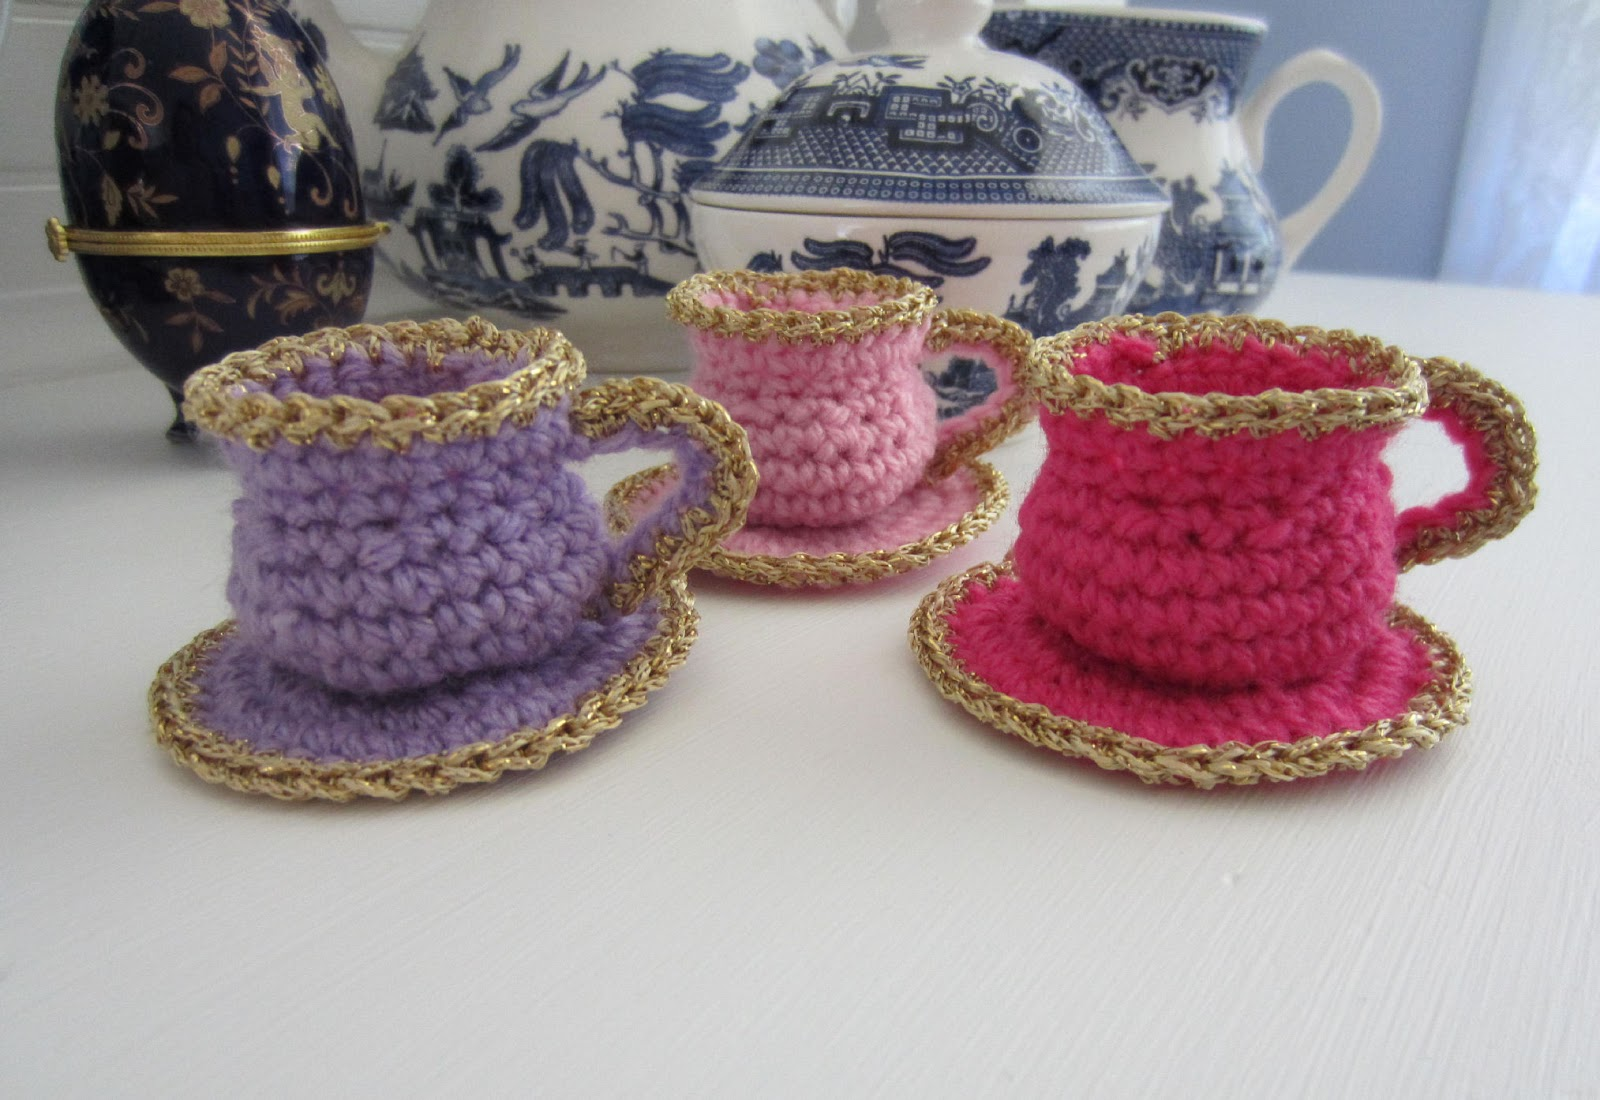 Justjen-knits&stitches: Tea Cup Christmas Ornament Pattern ...